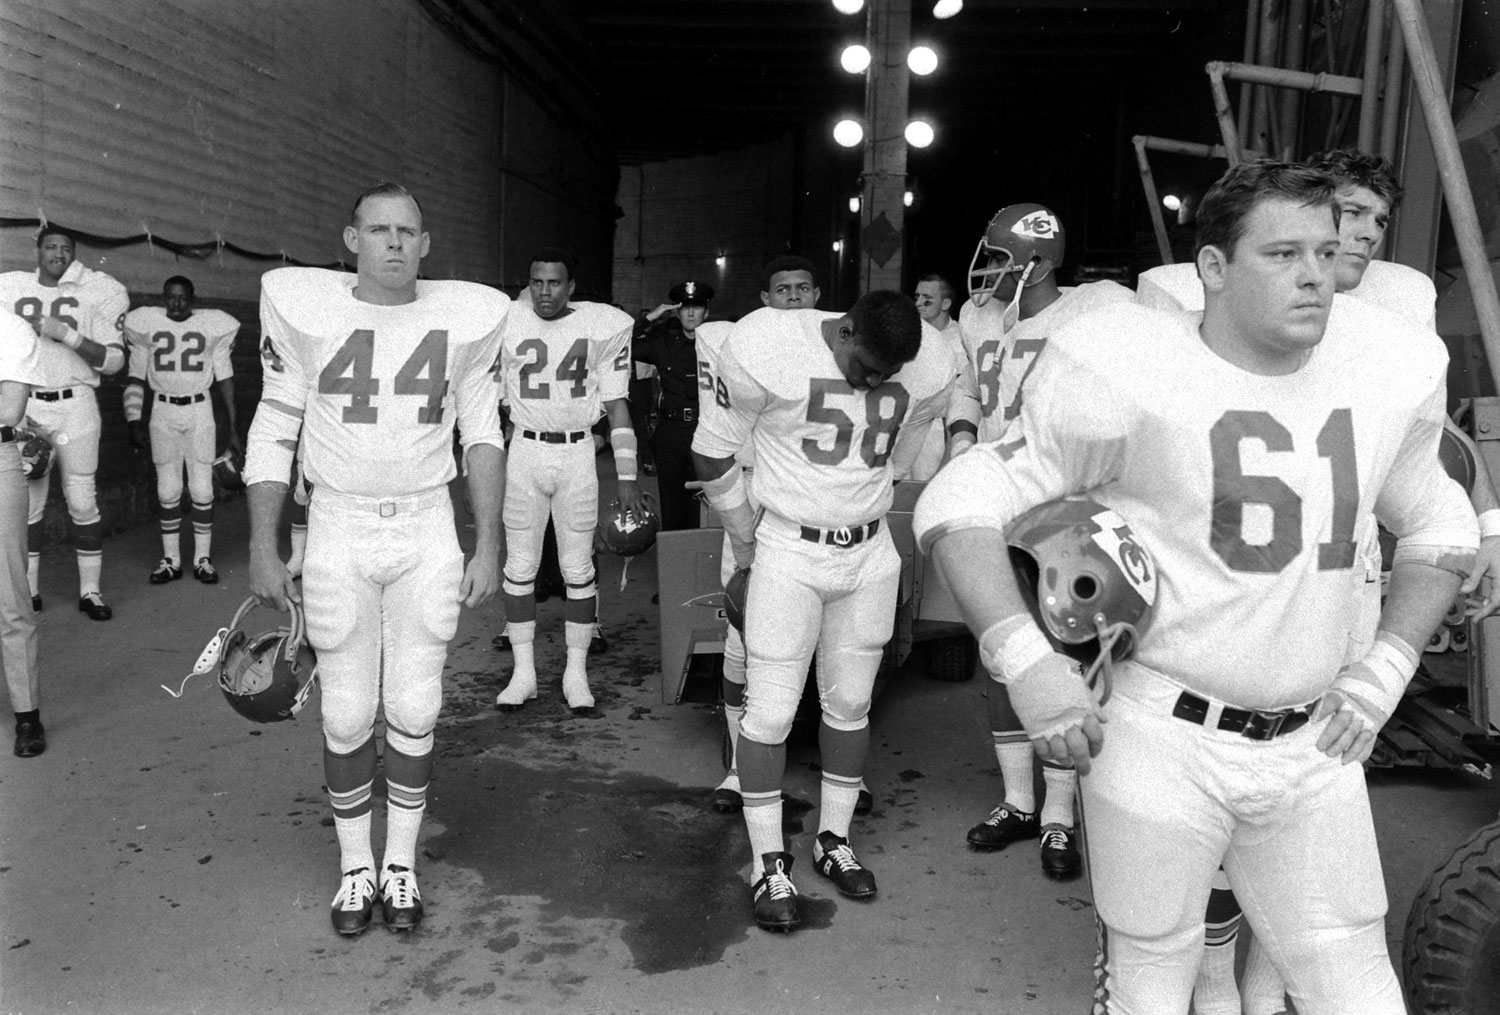 <b>Not published in LIFE.</b> The Kansas City Chiefs wait to take the field against the Packers prior to the start of Super Bowl I, Los Angeles, 1967.